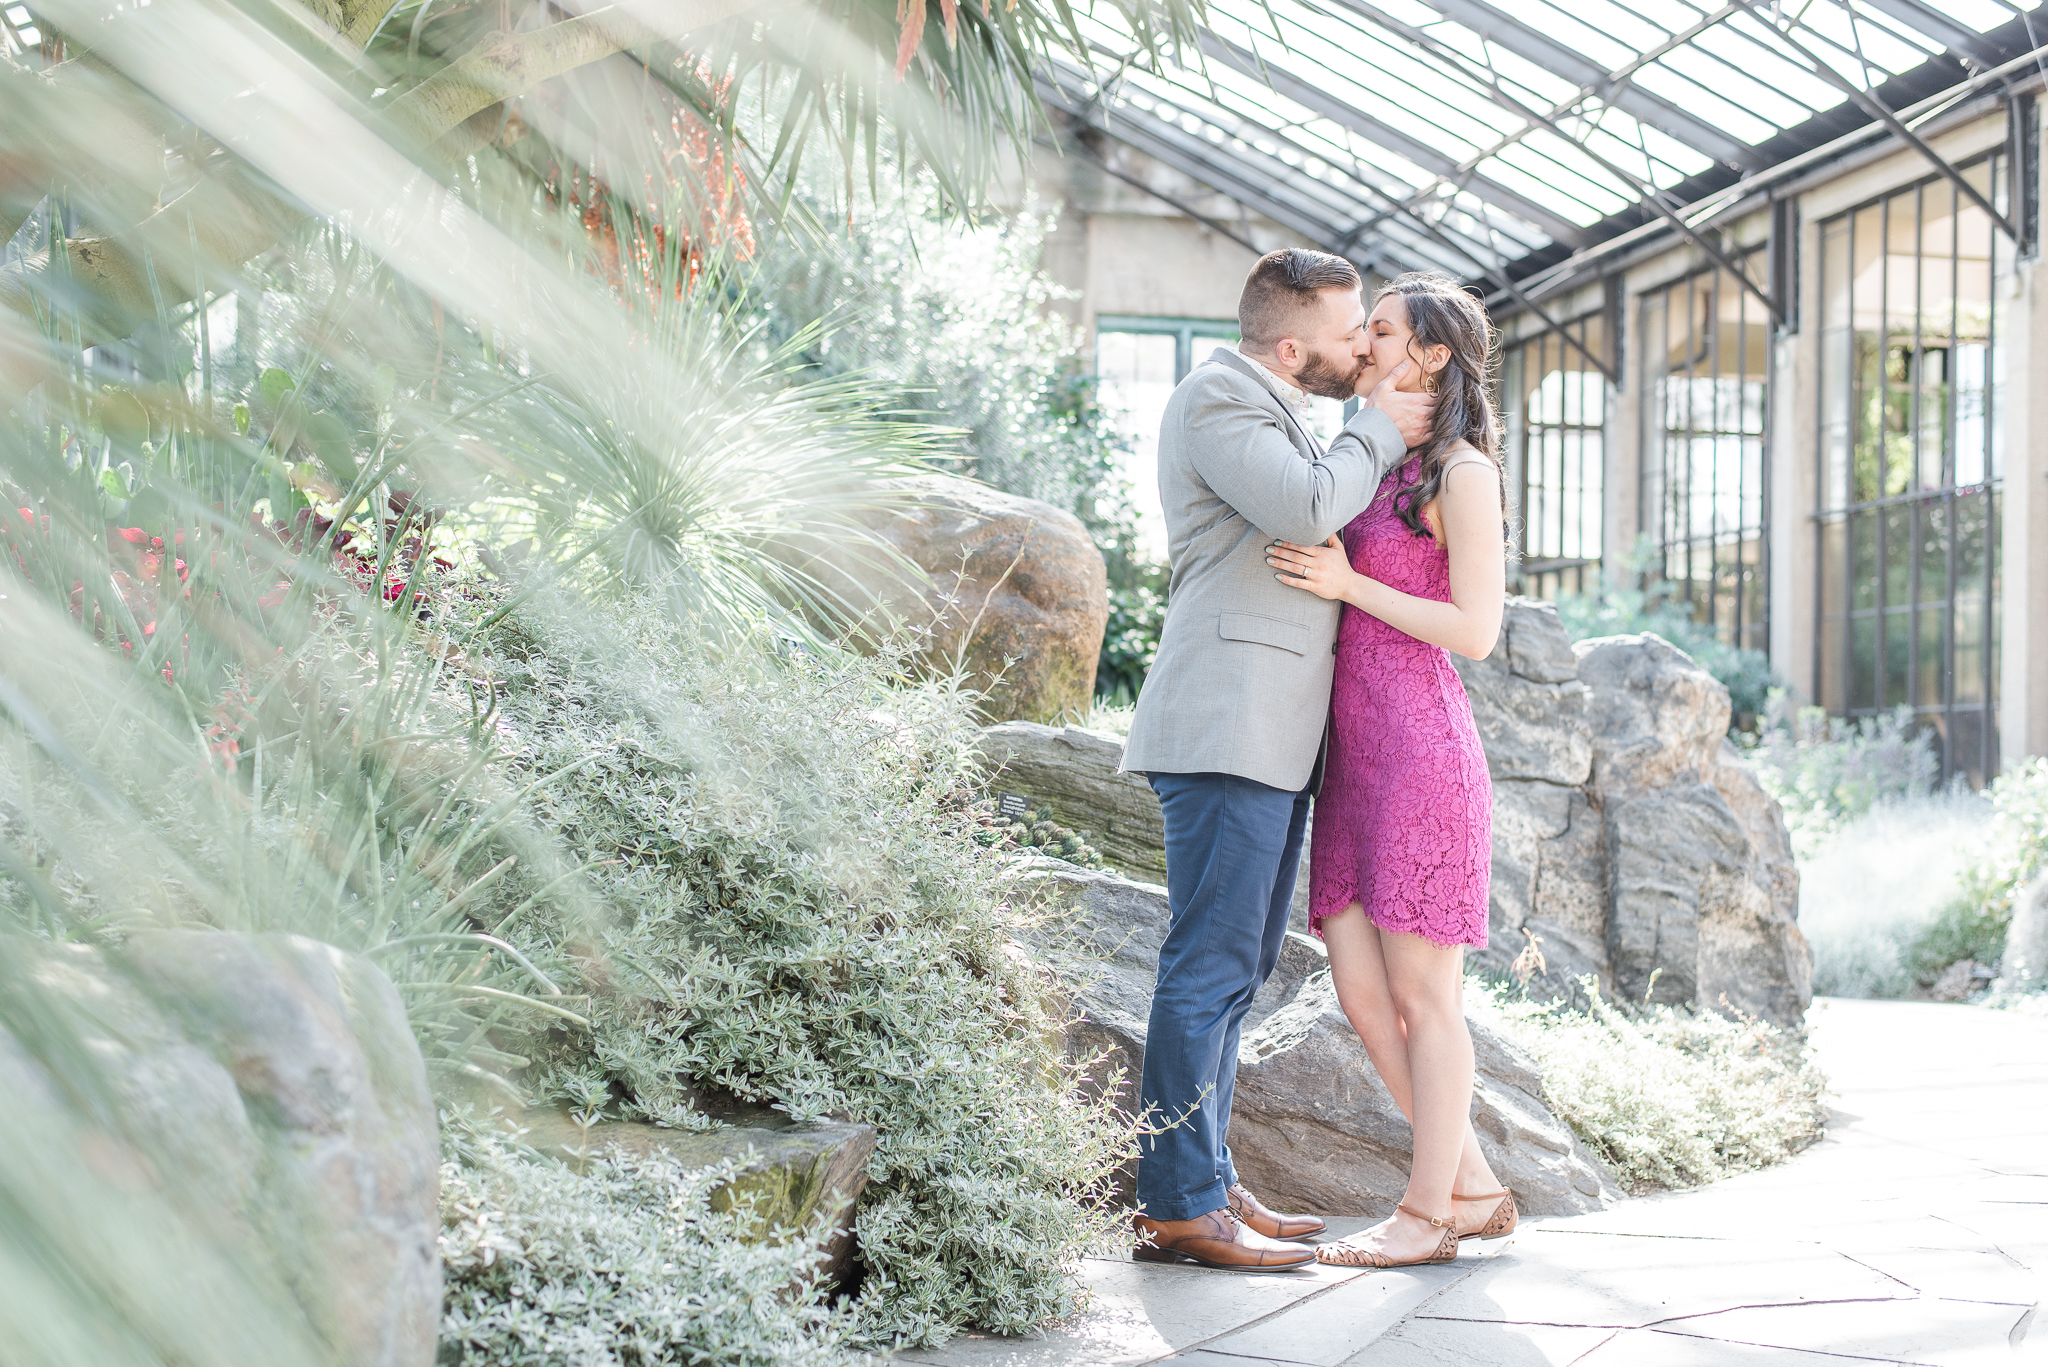 05_18_2019_Dana_Slifer_Photography_Heather_and_Sean_Engagement_Session_WEB_06.jpg